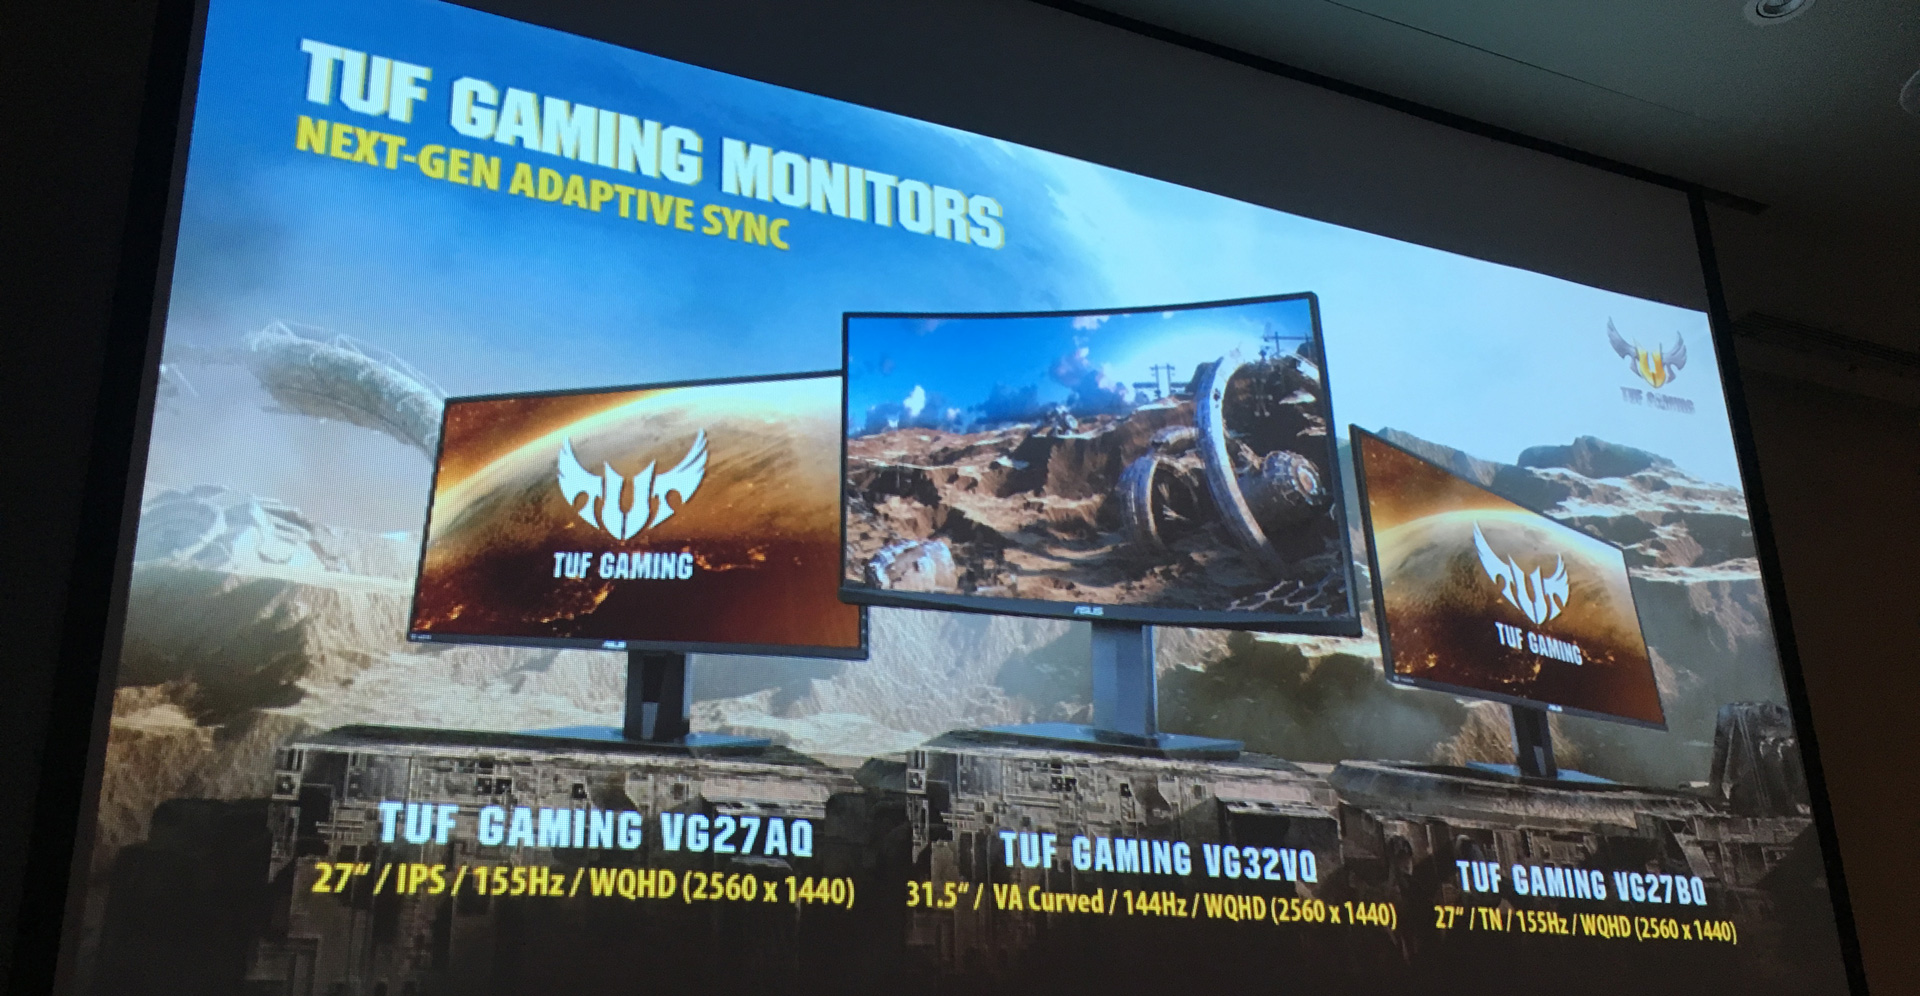 Asus combines motion blur reduction with variable refresh rate | bit